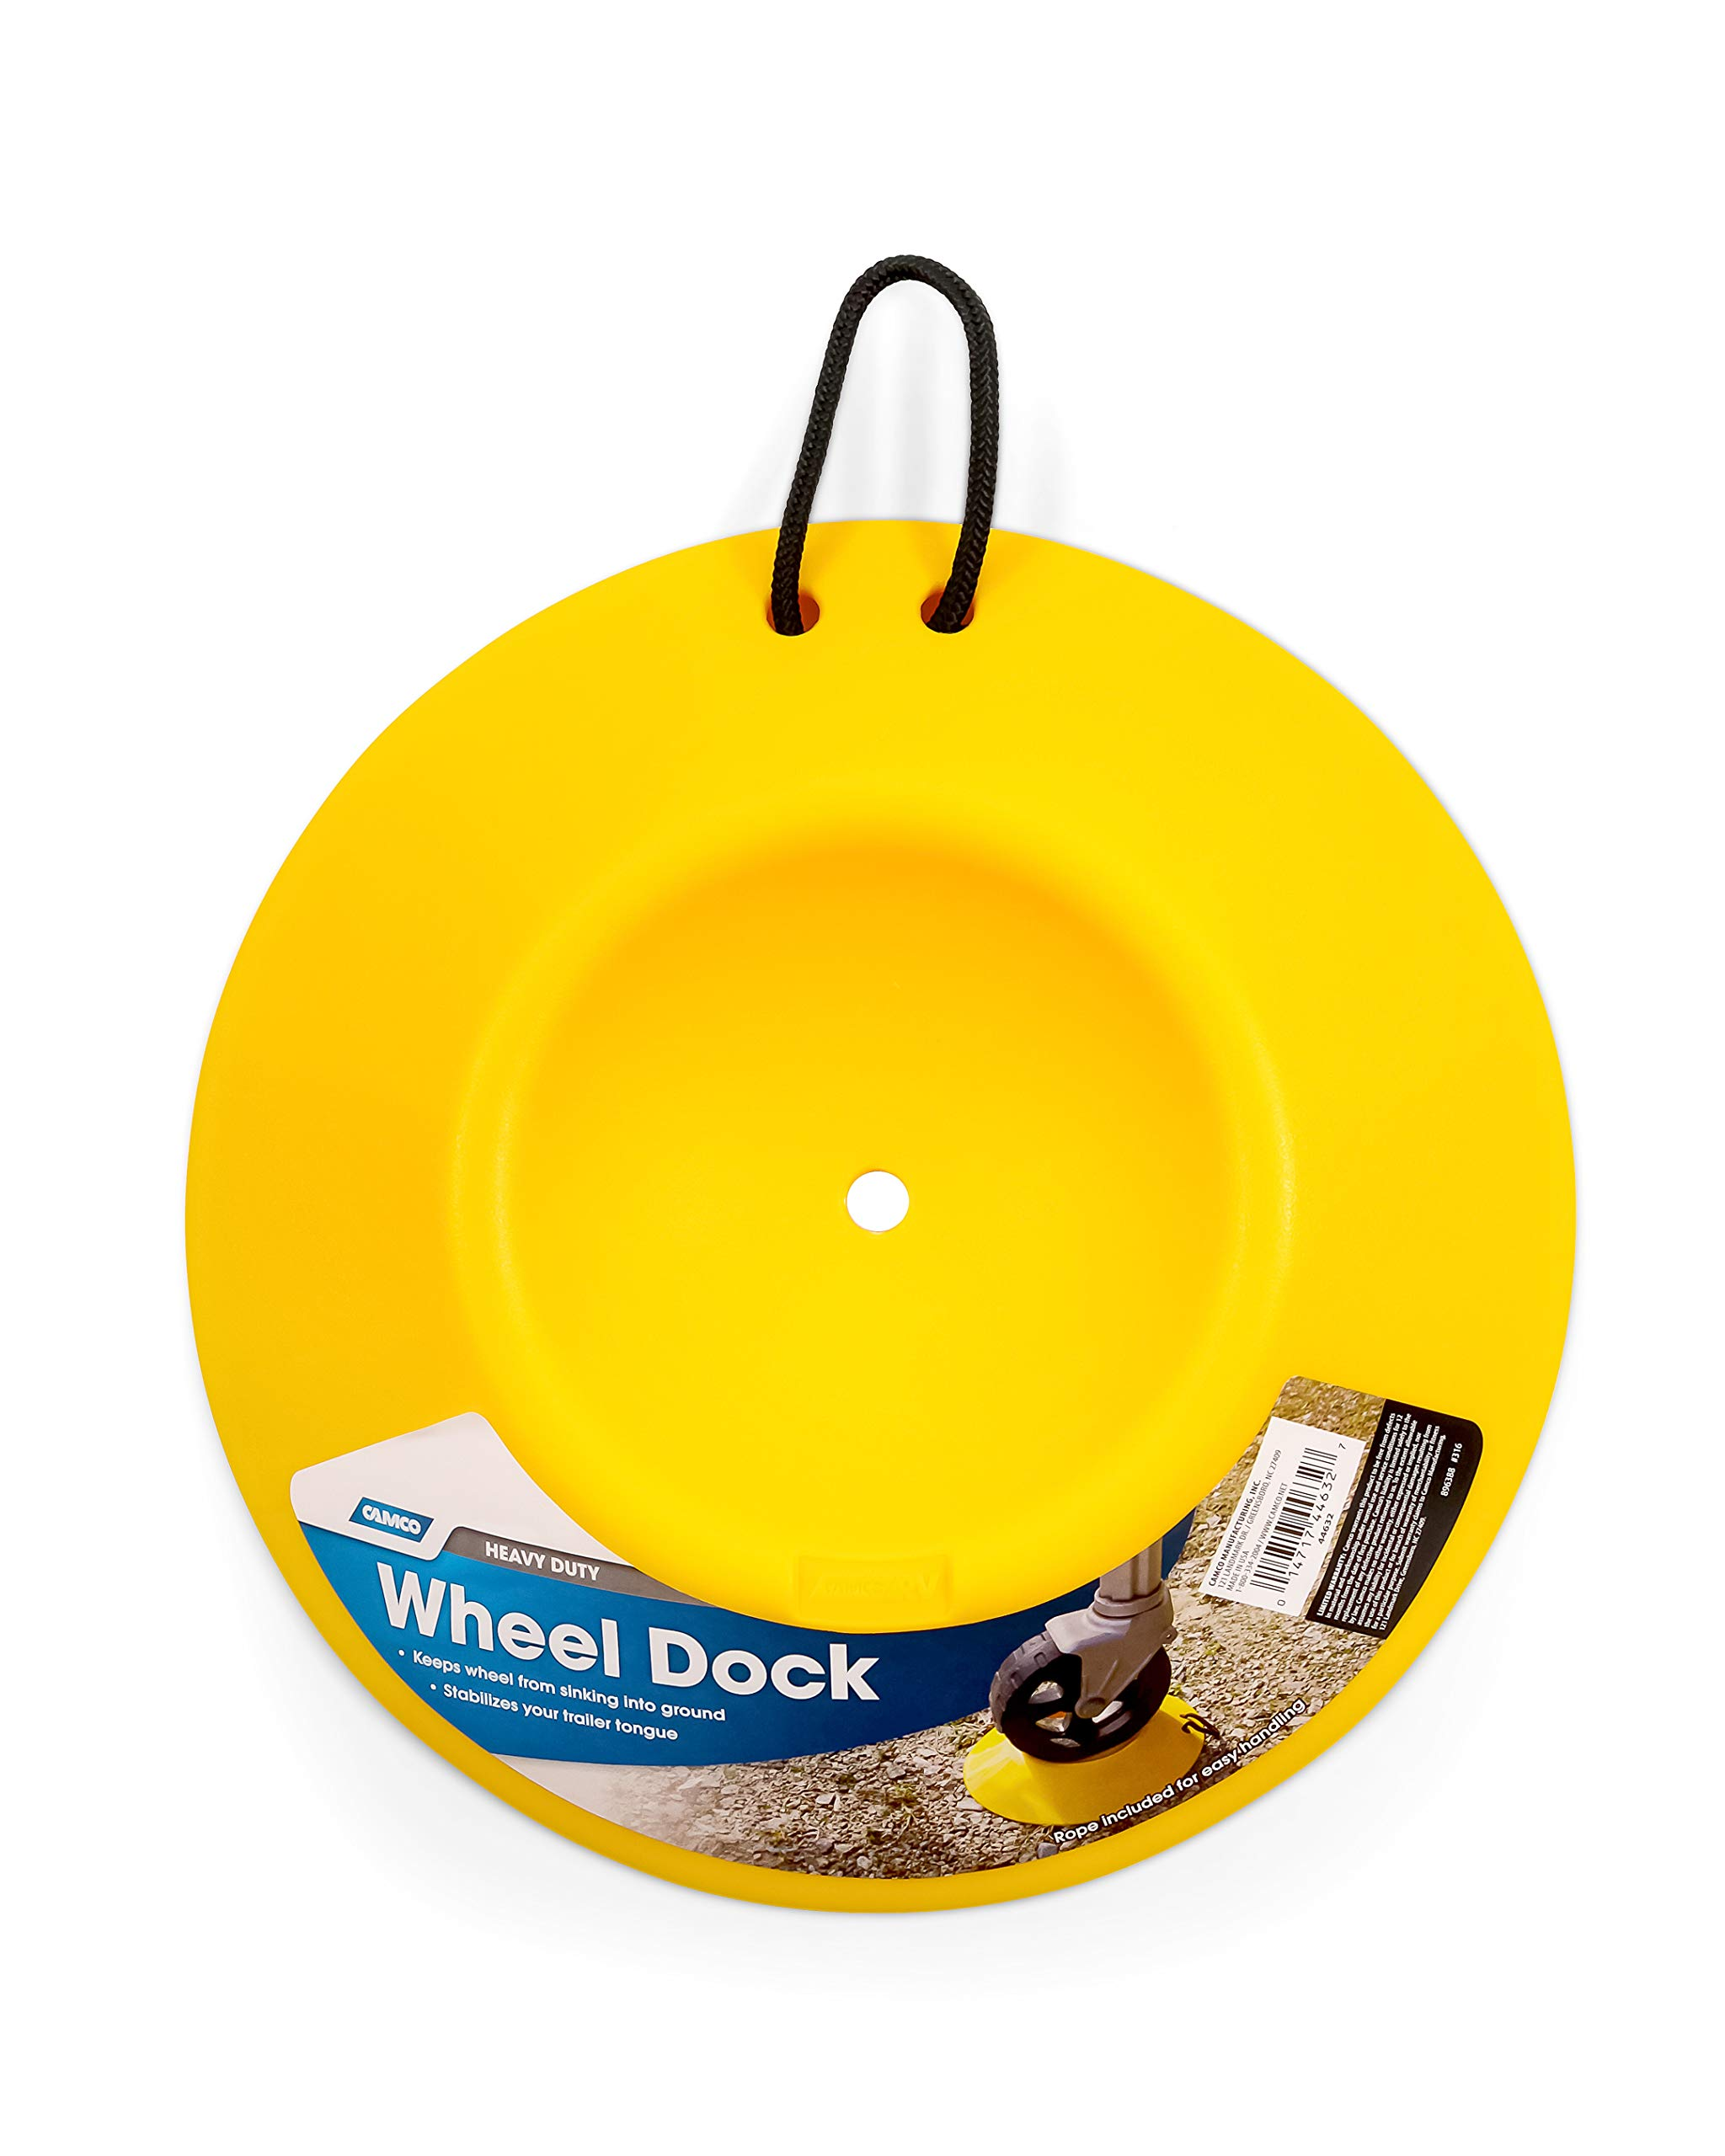 Camco Heavy Duty Wheel Dock with Rope Handle - Helps Prevent Trailer Wheel from Sinking Into Dirt or Mud, Easy to Store and Transport (44632) by Camco (Image #3)